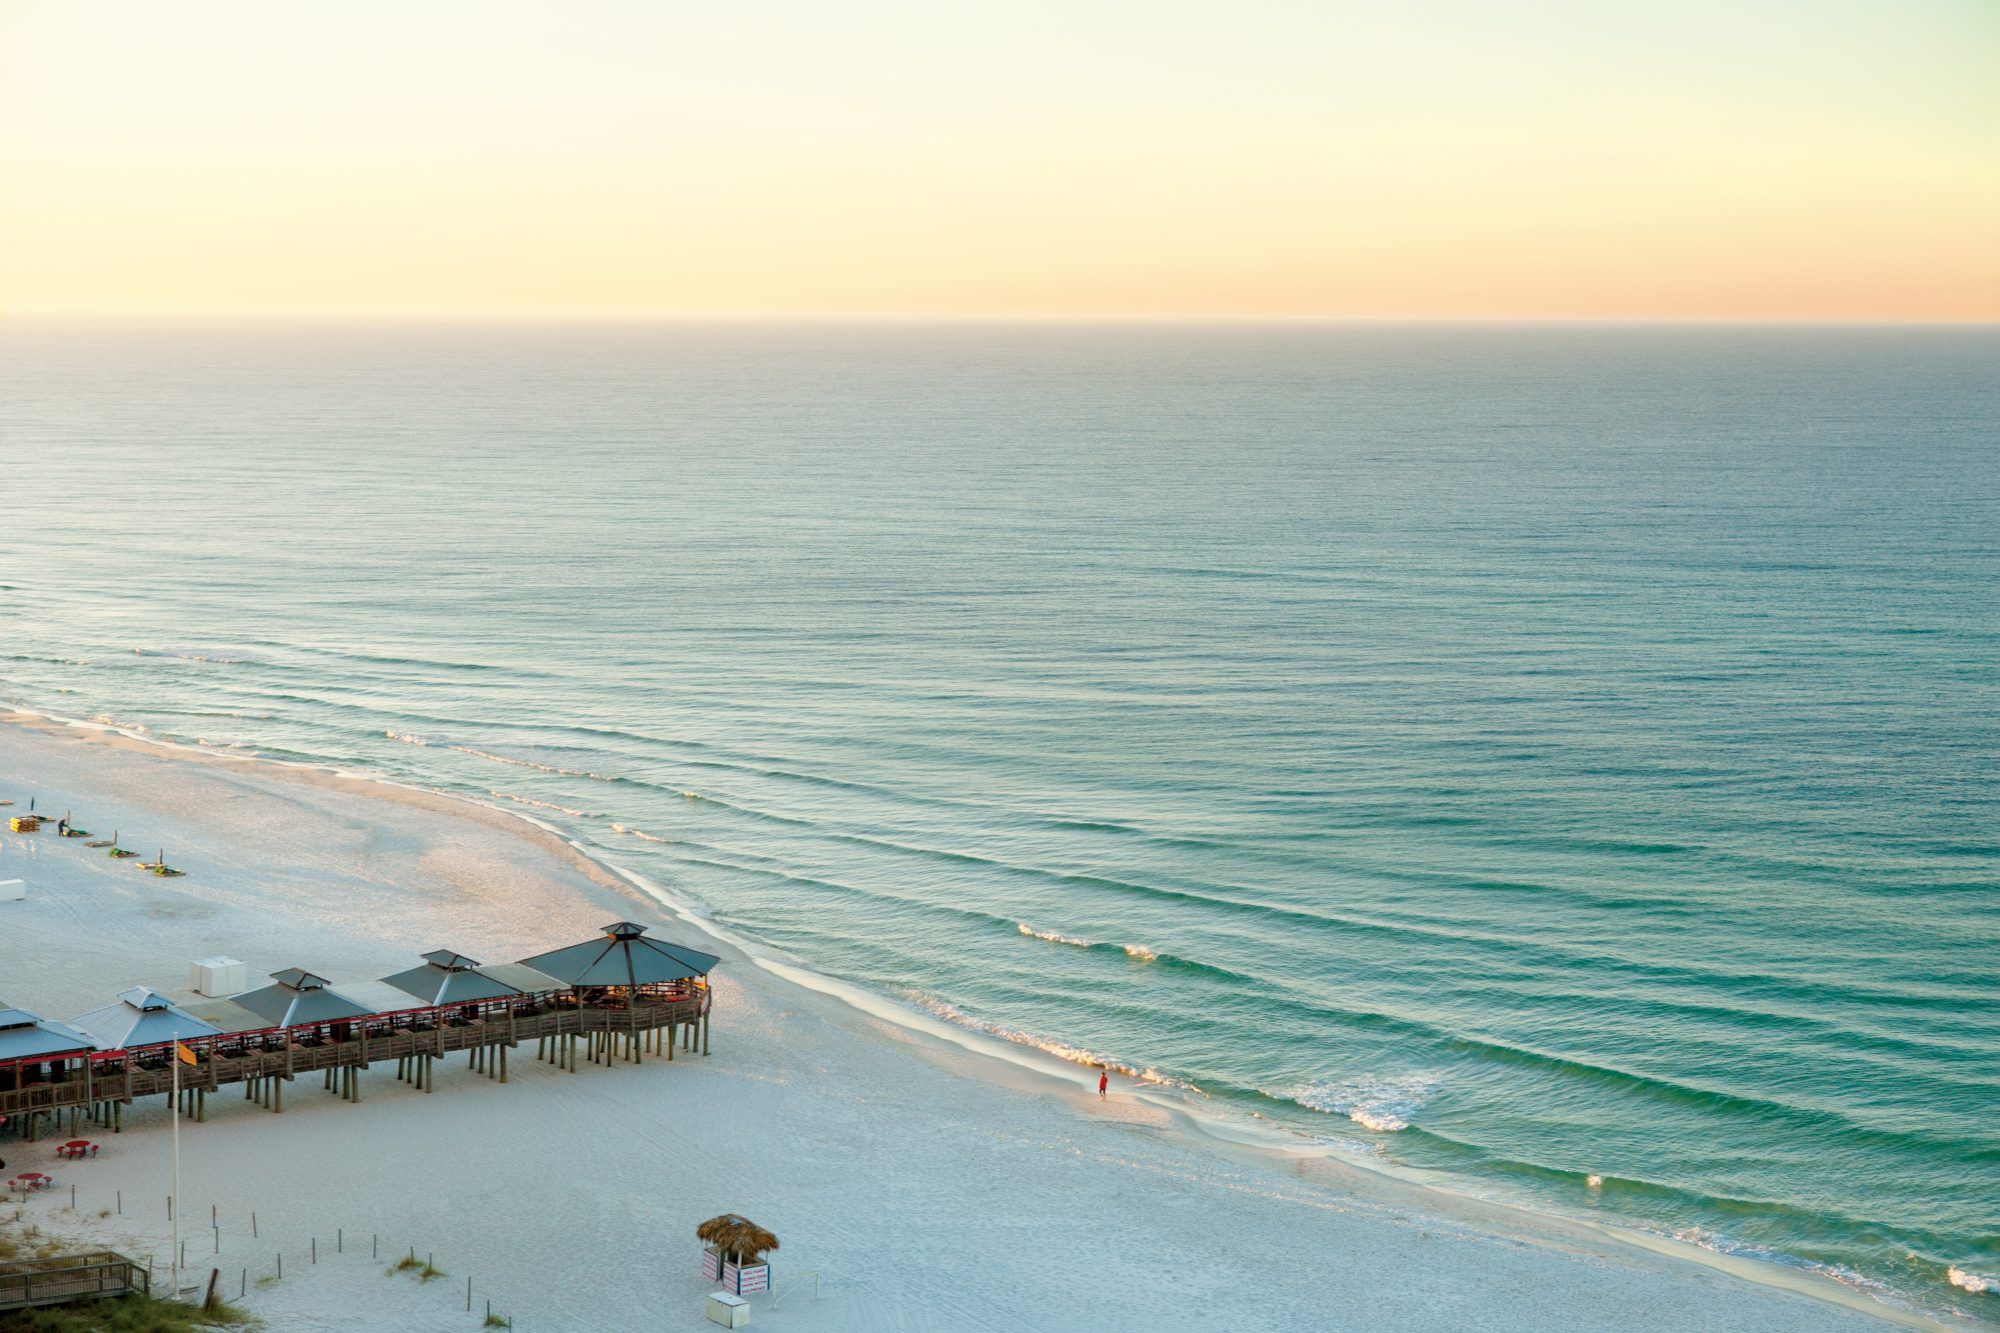 7. Panama City Beach, Florida